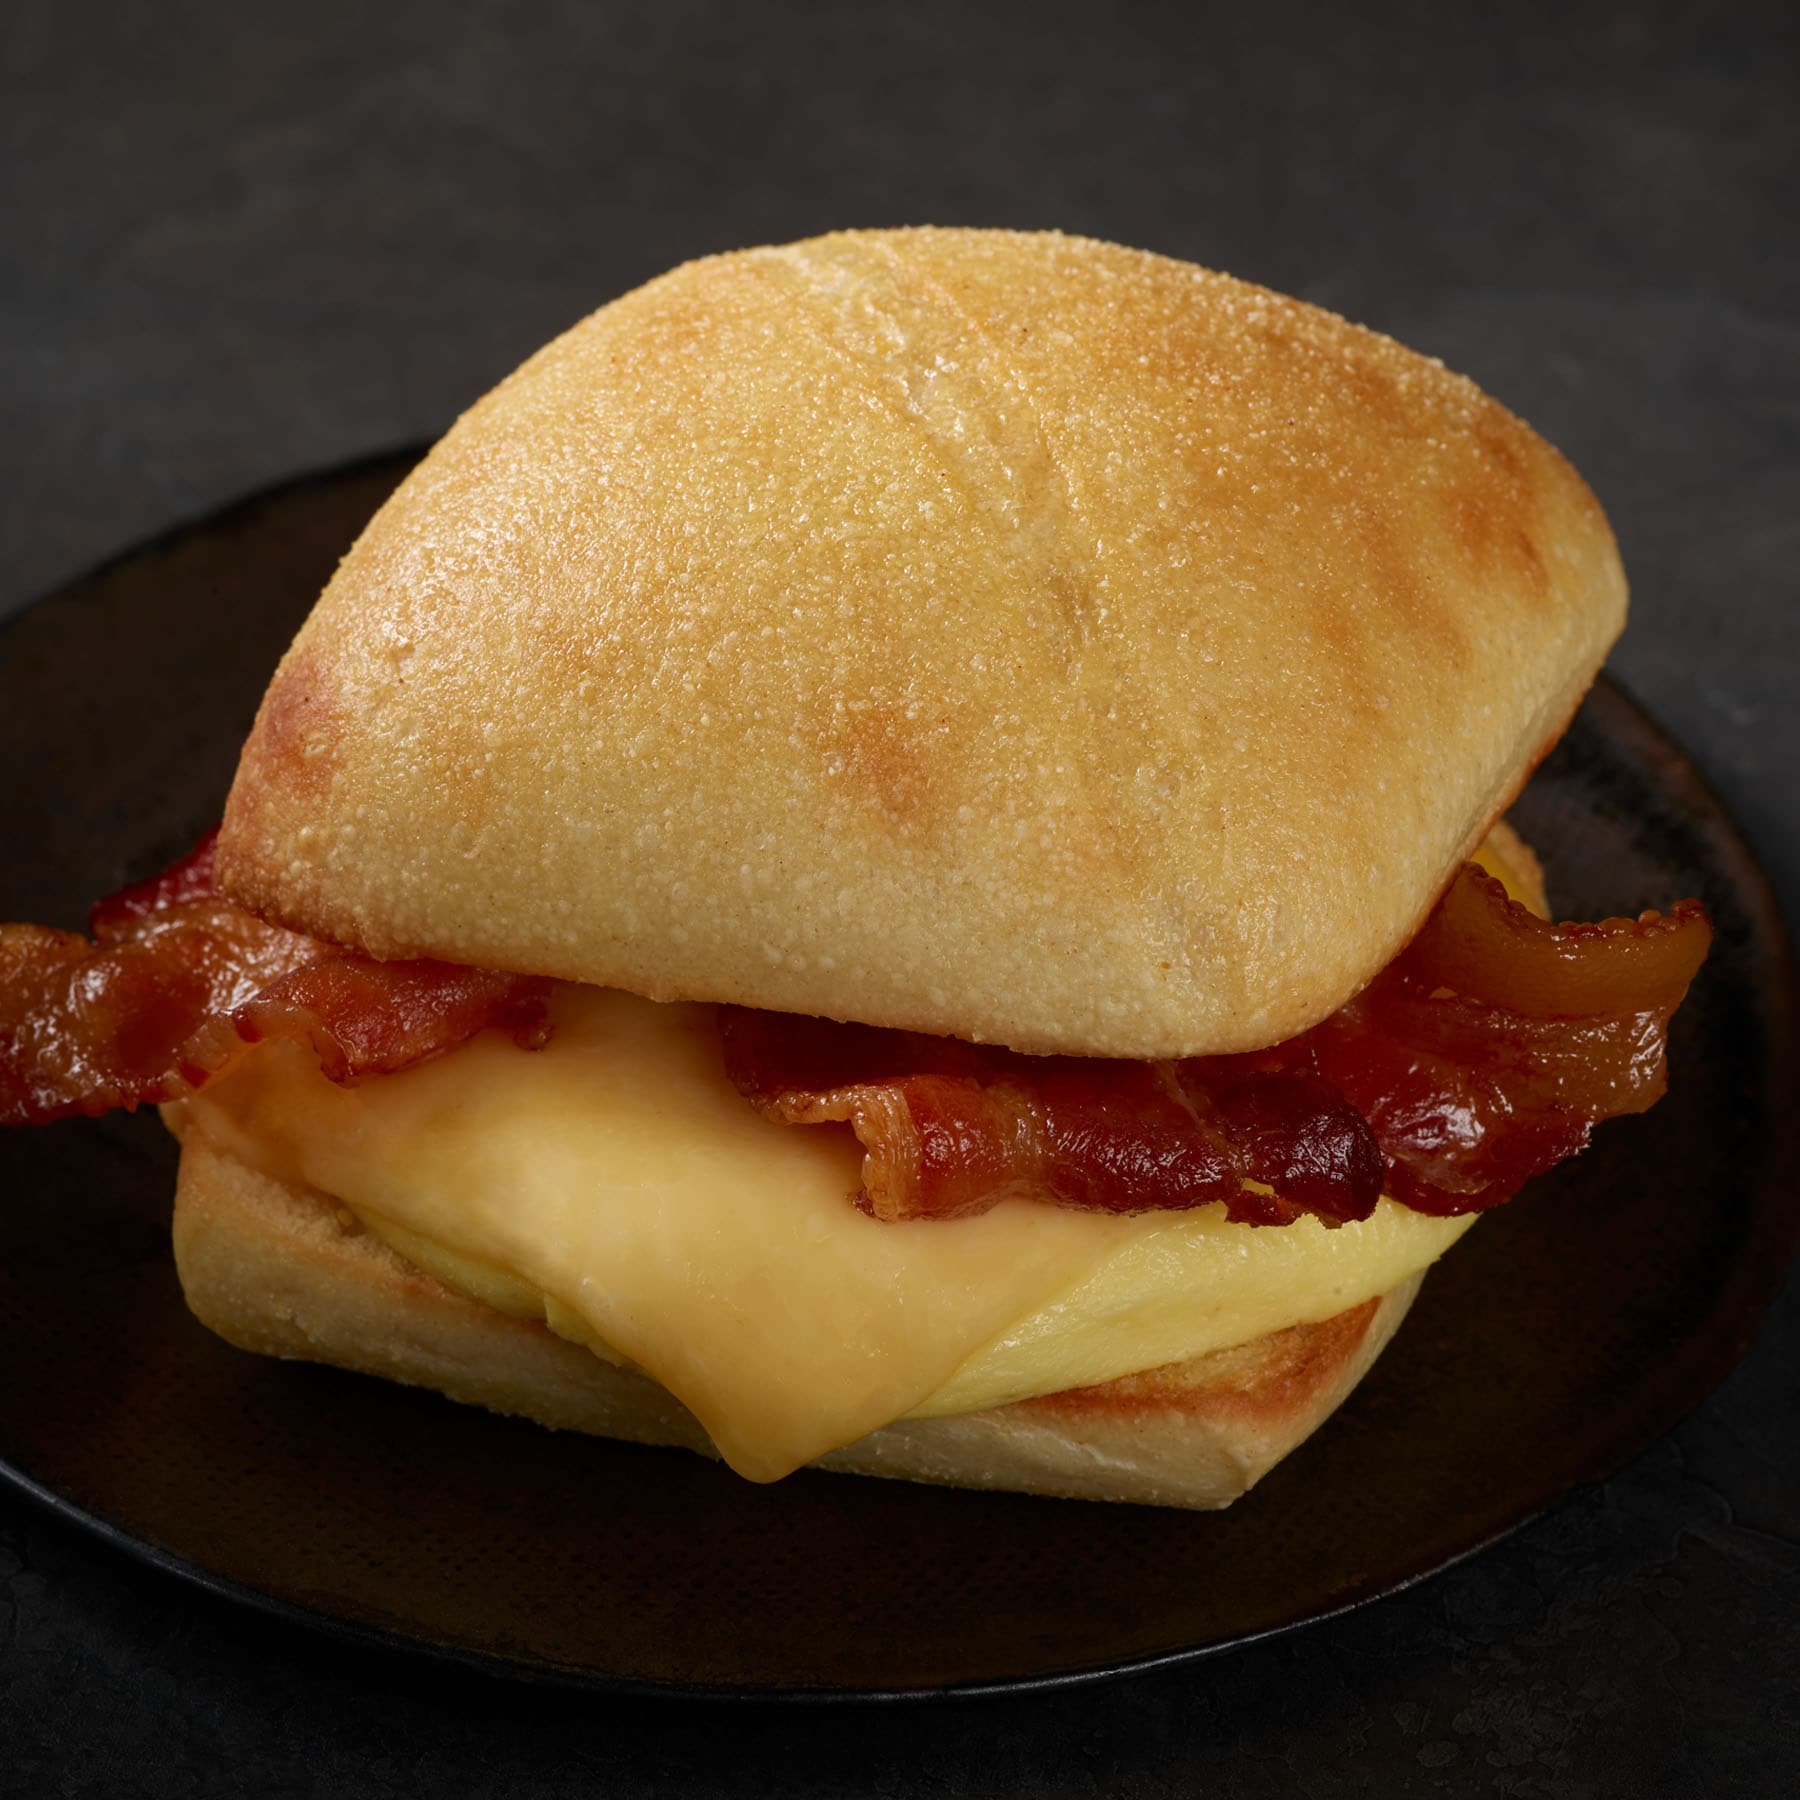 150 Stars gets you a Bacon Gouda